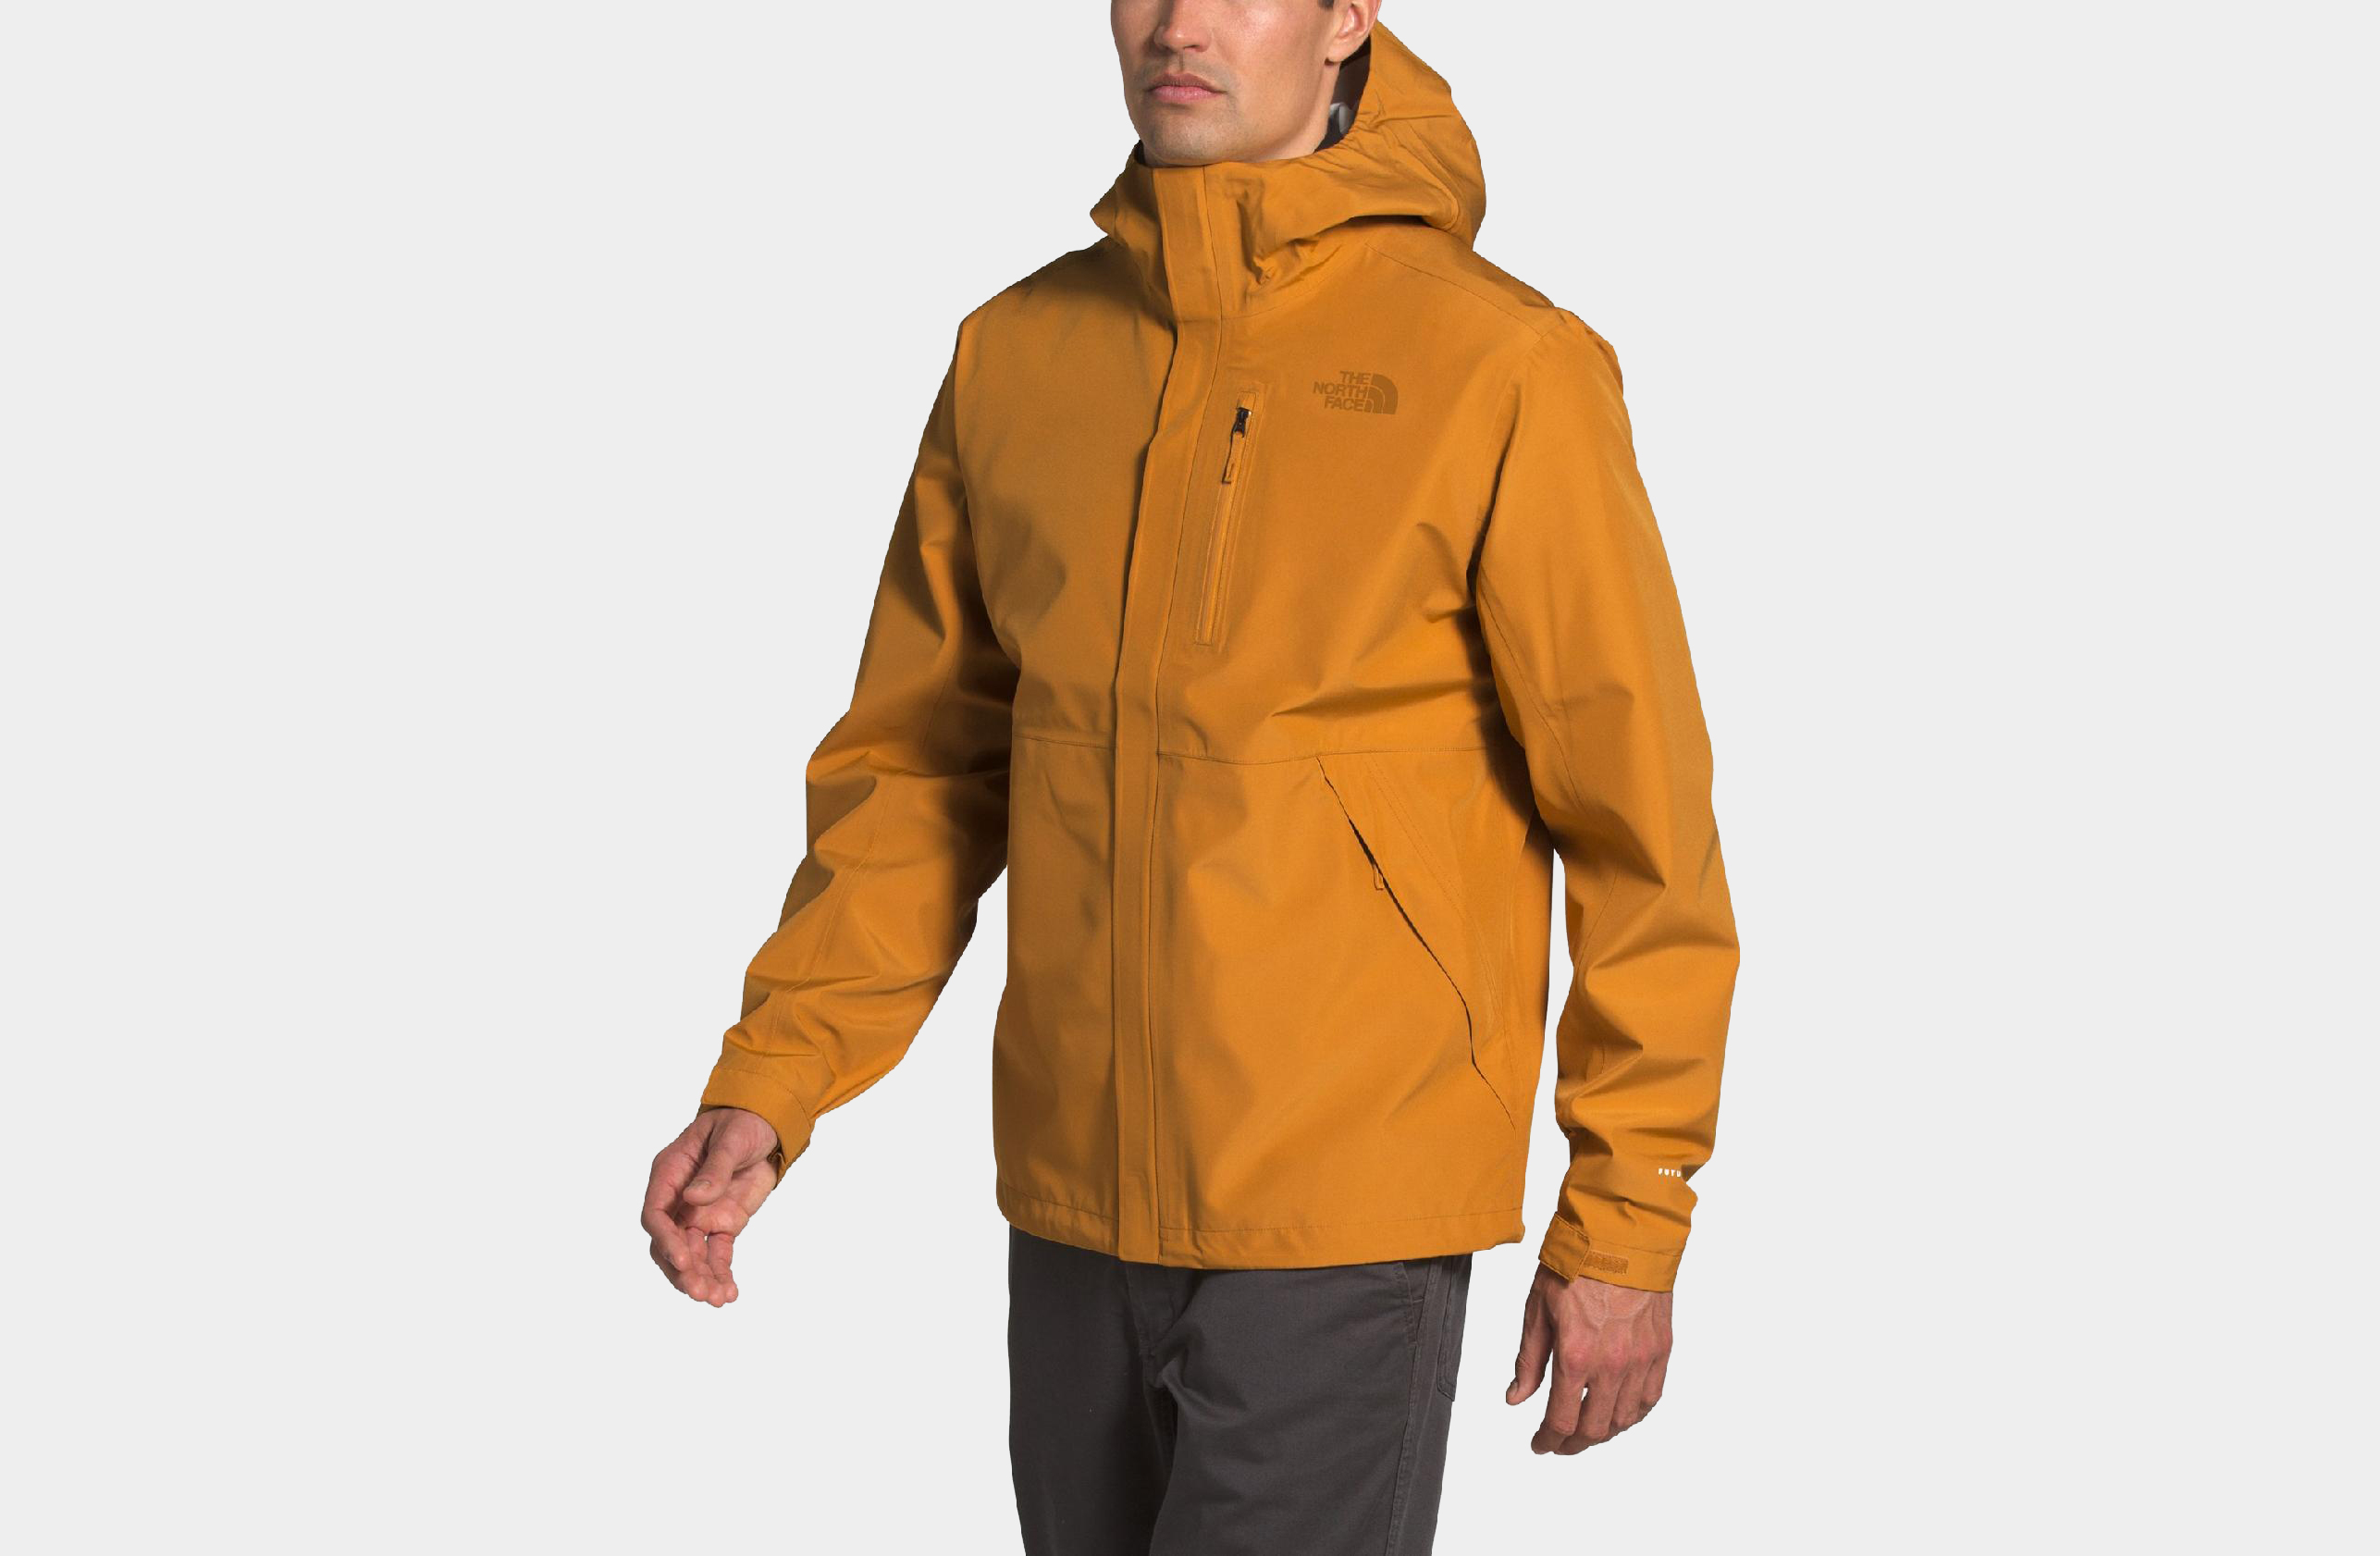 The North Face Dryzzle FUTURELIGHT rain jacket